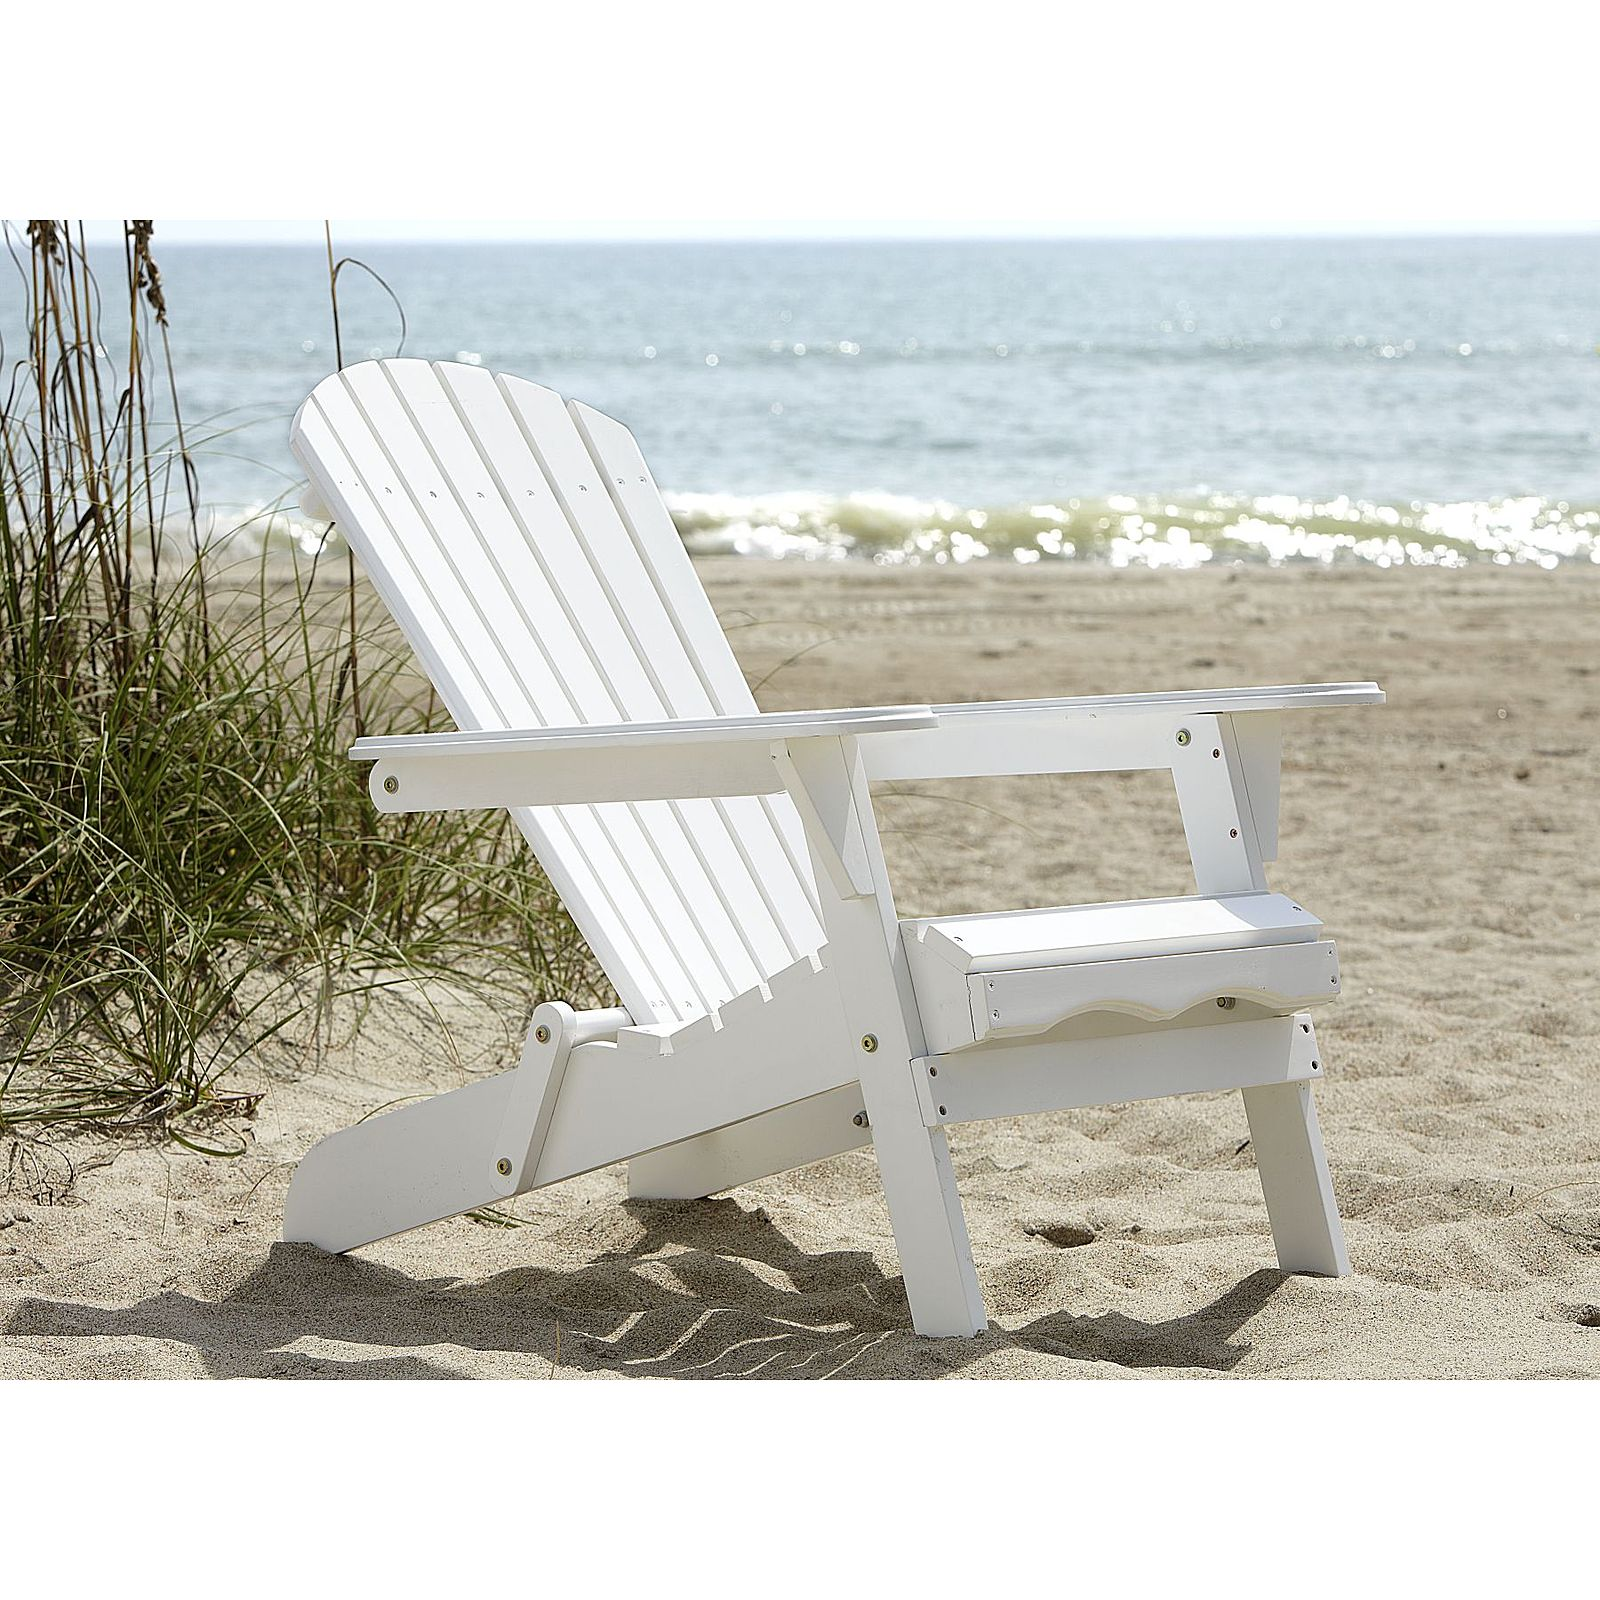 Adirondack Chairs On Beach Wallpaper Beach Chair 1600x1600